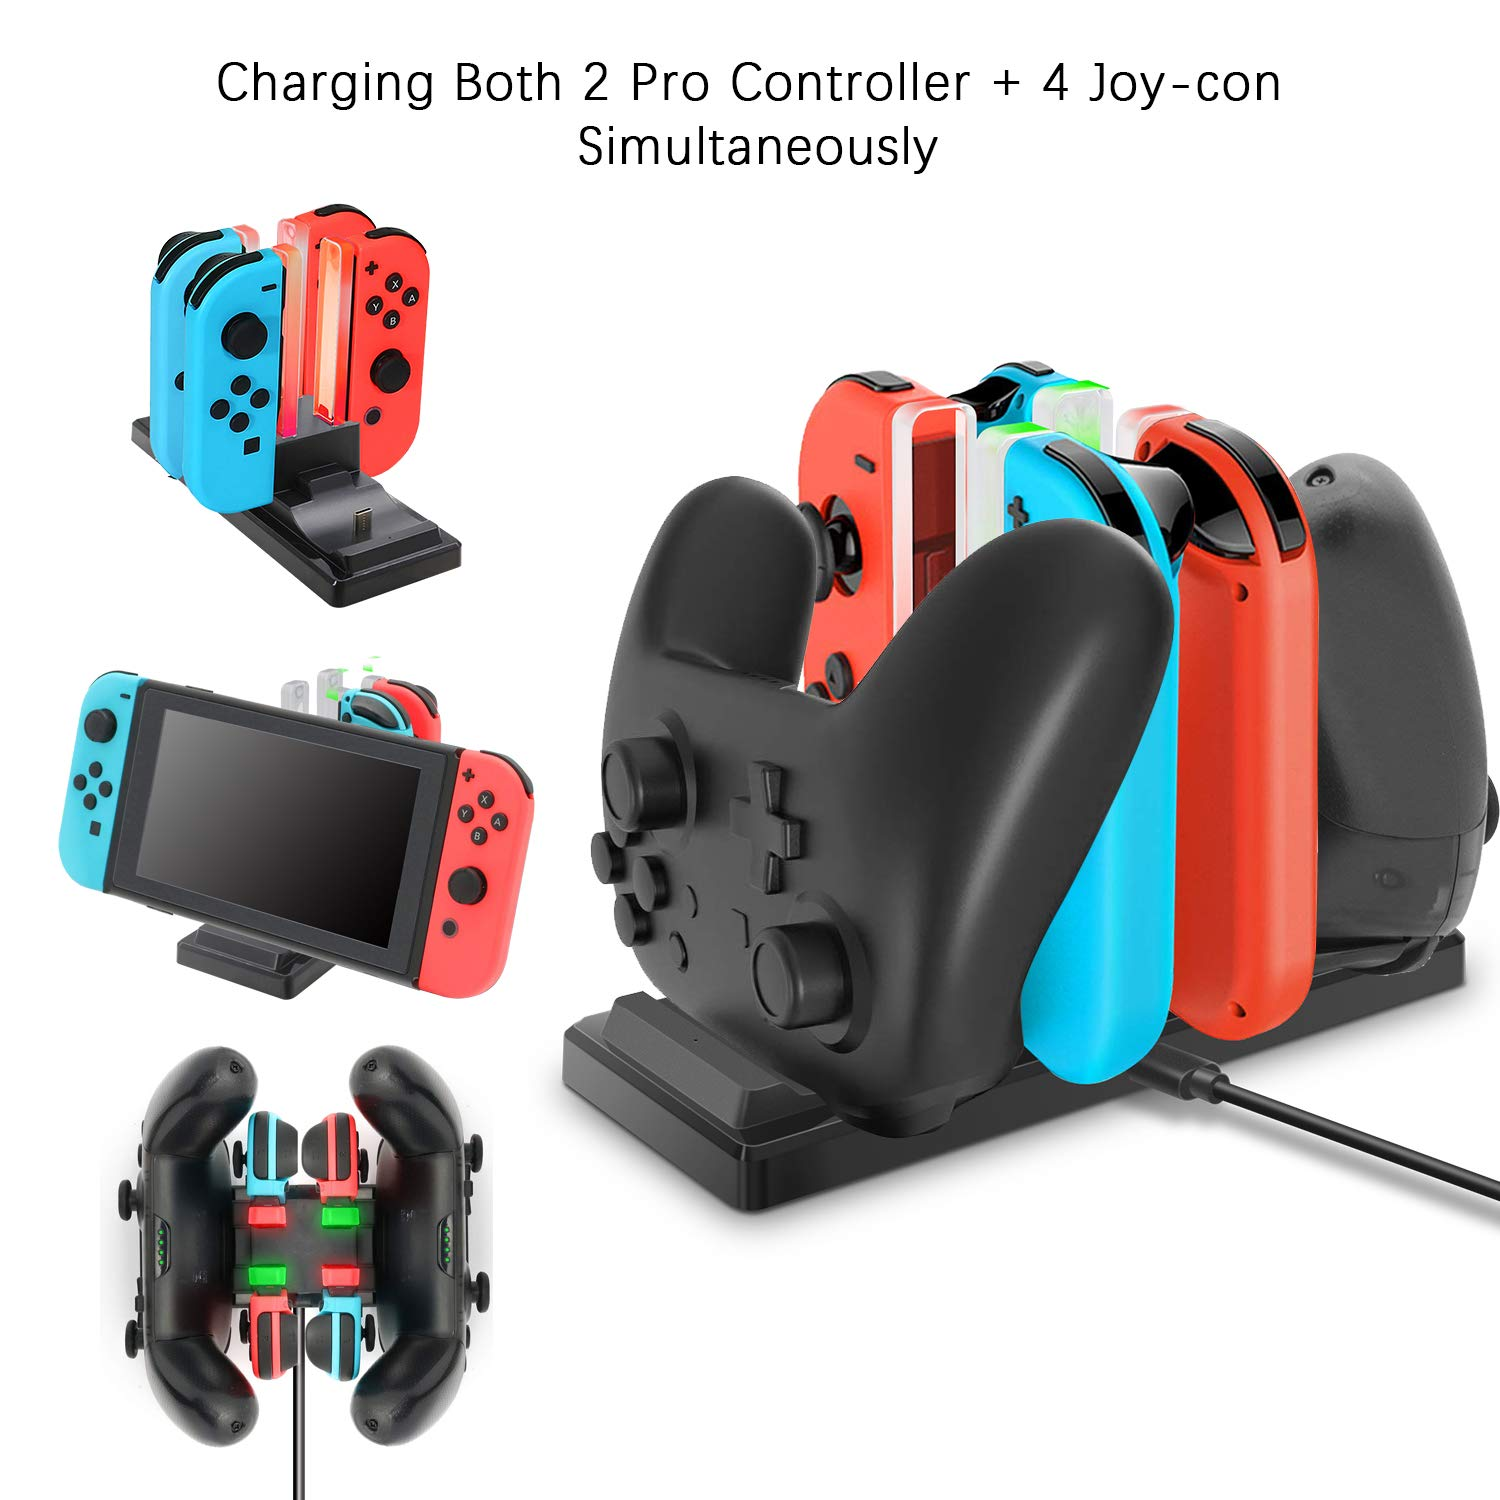 BOOGIIO Controller Charger for Nintendo Switch, 6 in 1 Charging Dock Stand Station for Switch Joy-cons and Pro Controllers with Colored Charging Indicator and Type-C Charging Cable